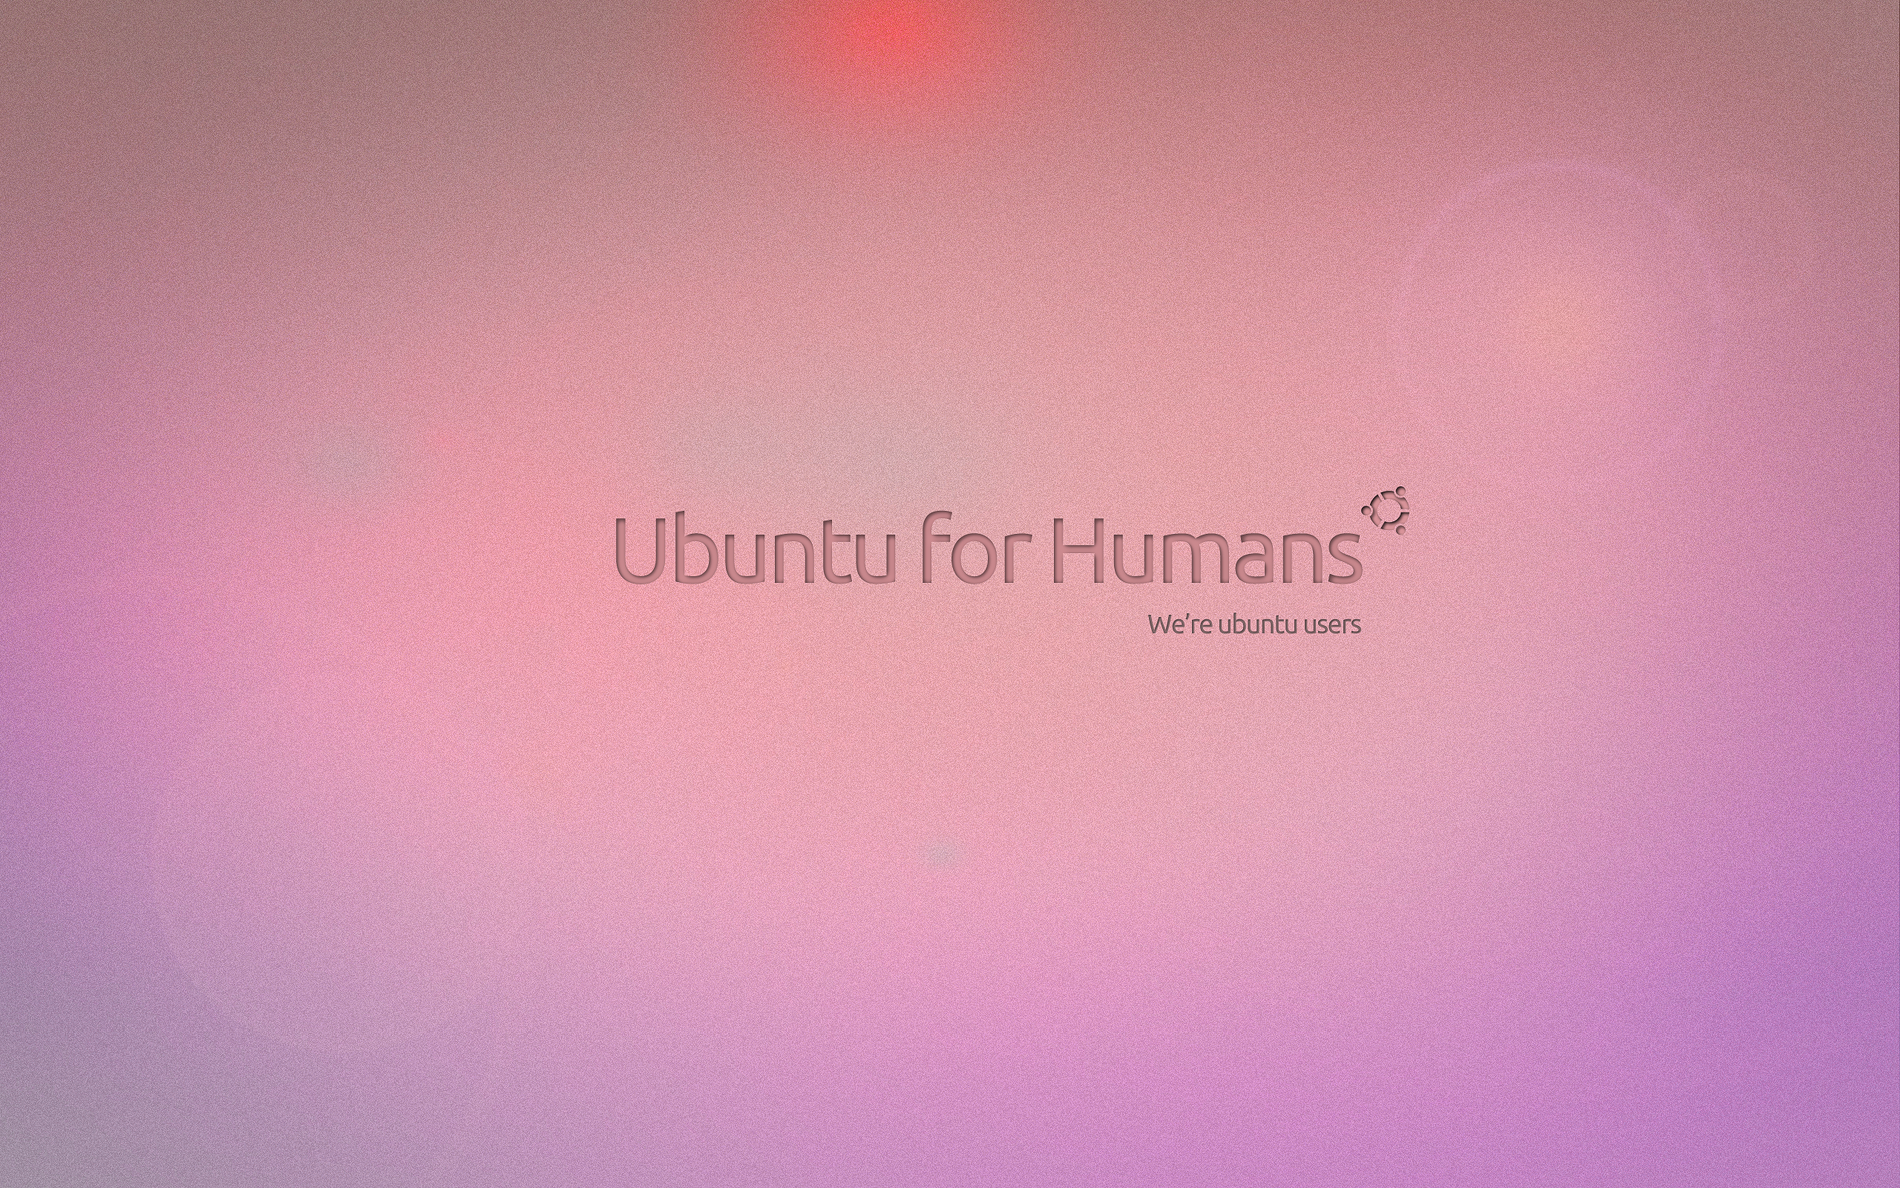 Ubuntu_for_Humans_sexy default by Felipi